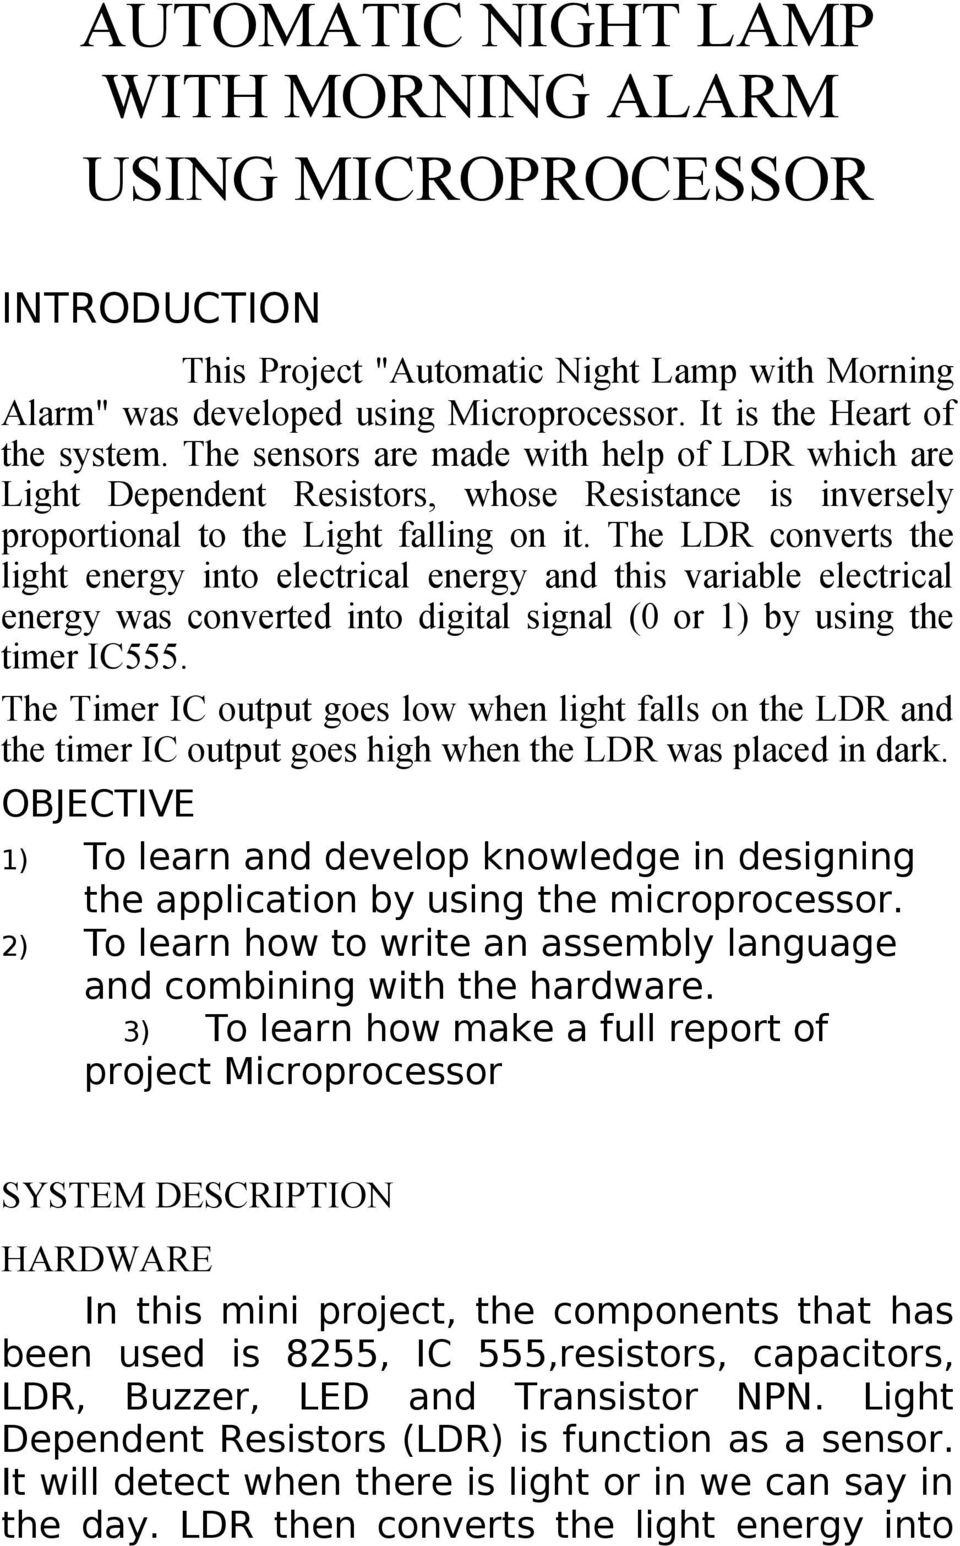 The LDR converts the light energy into electrical energy and this variable electrical energy was converted into digital signal (0 or 1) by using the timer IC555.